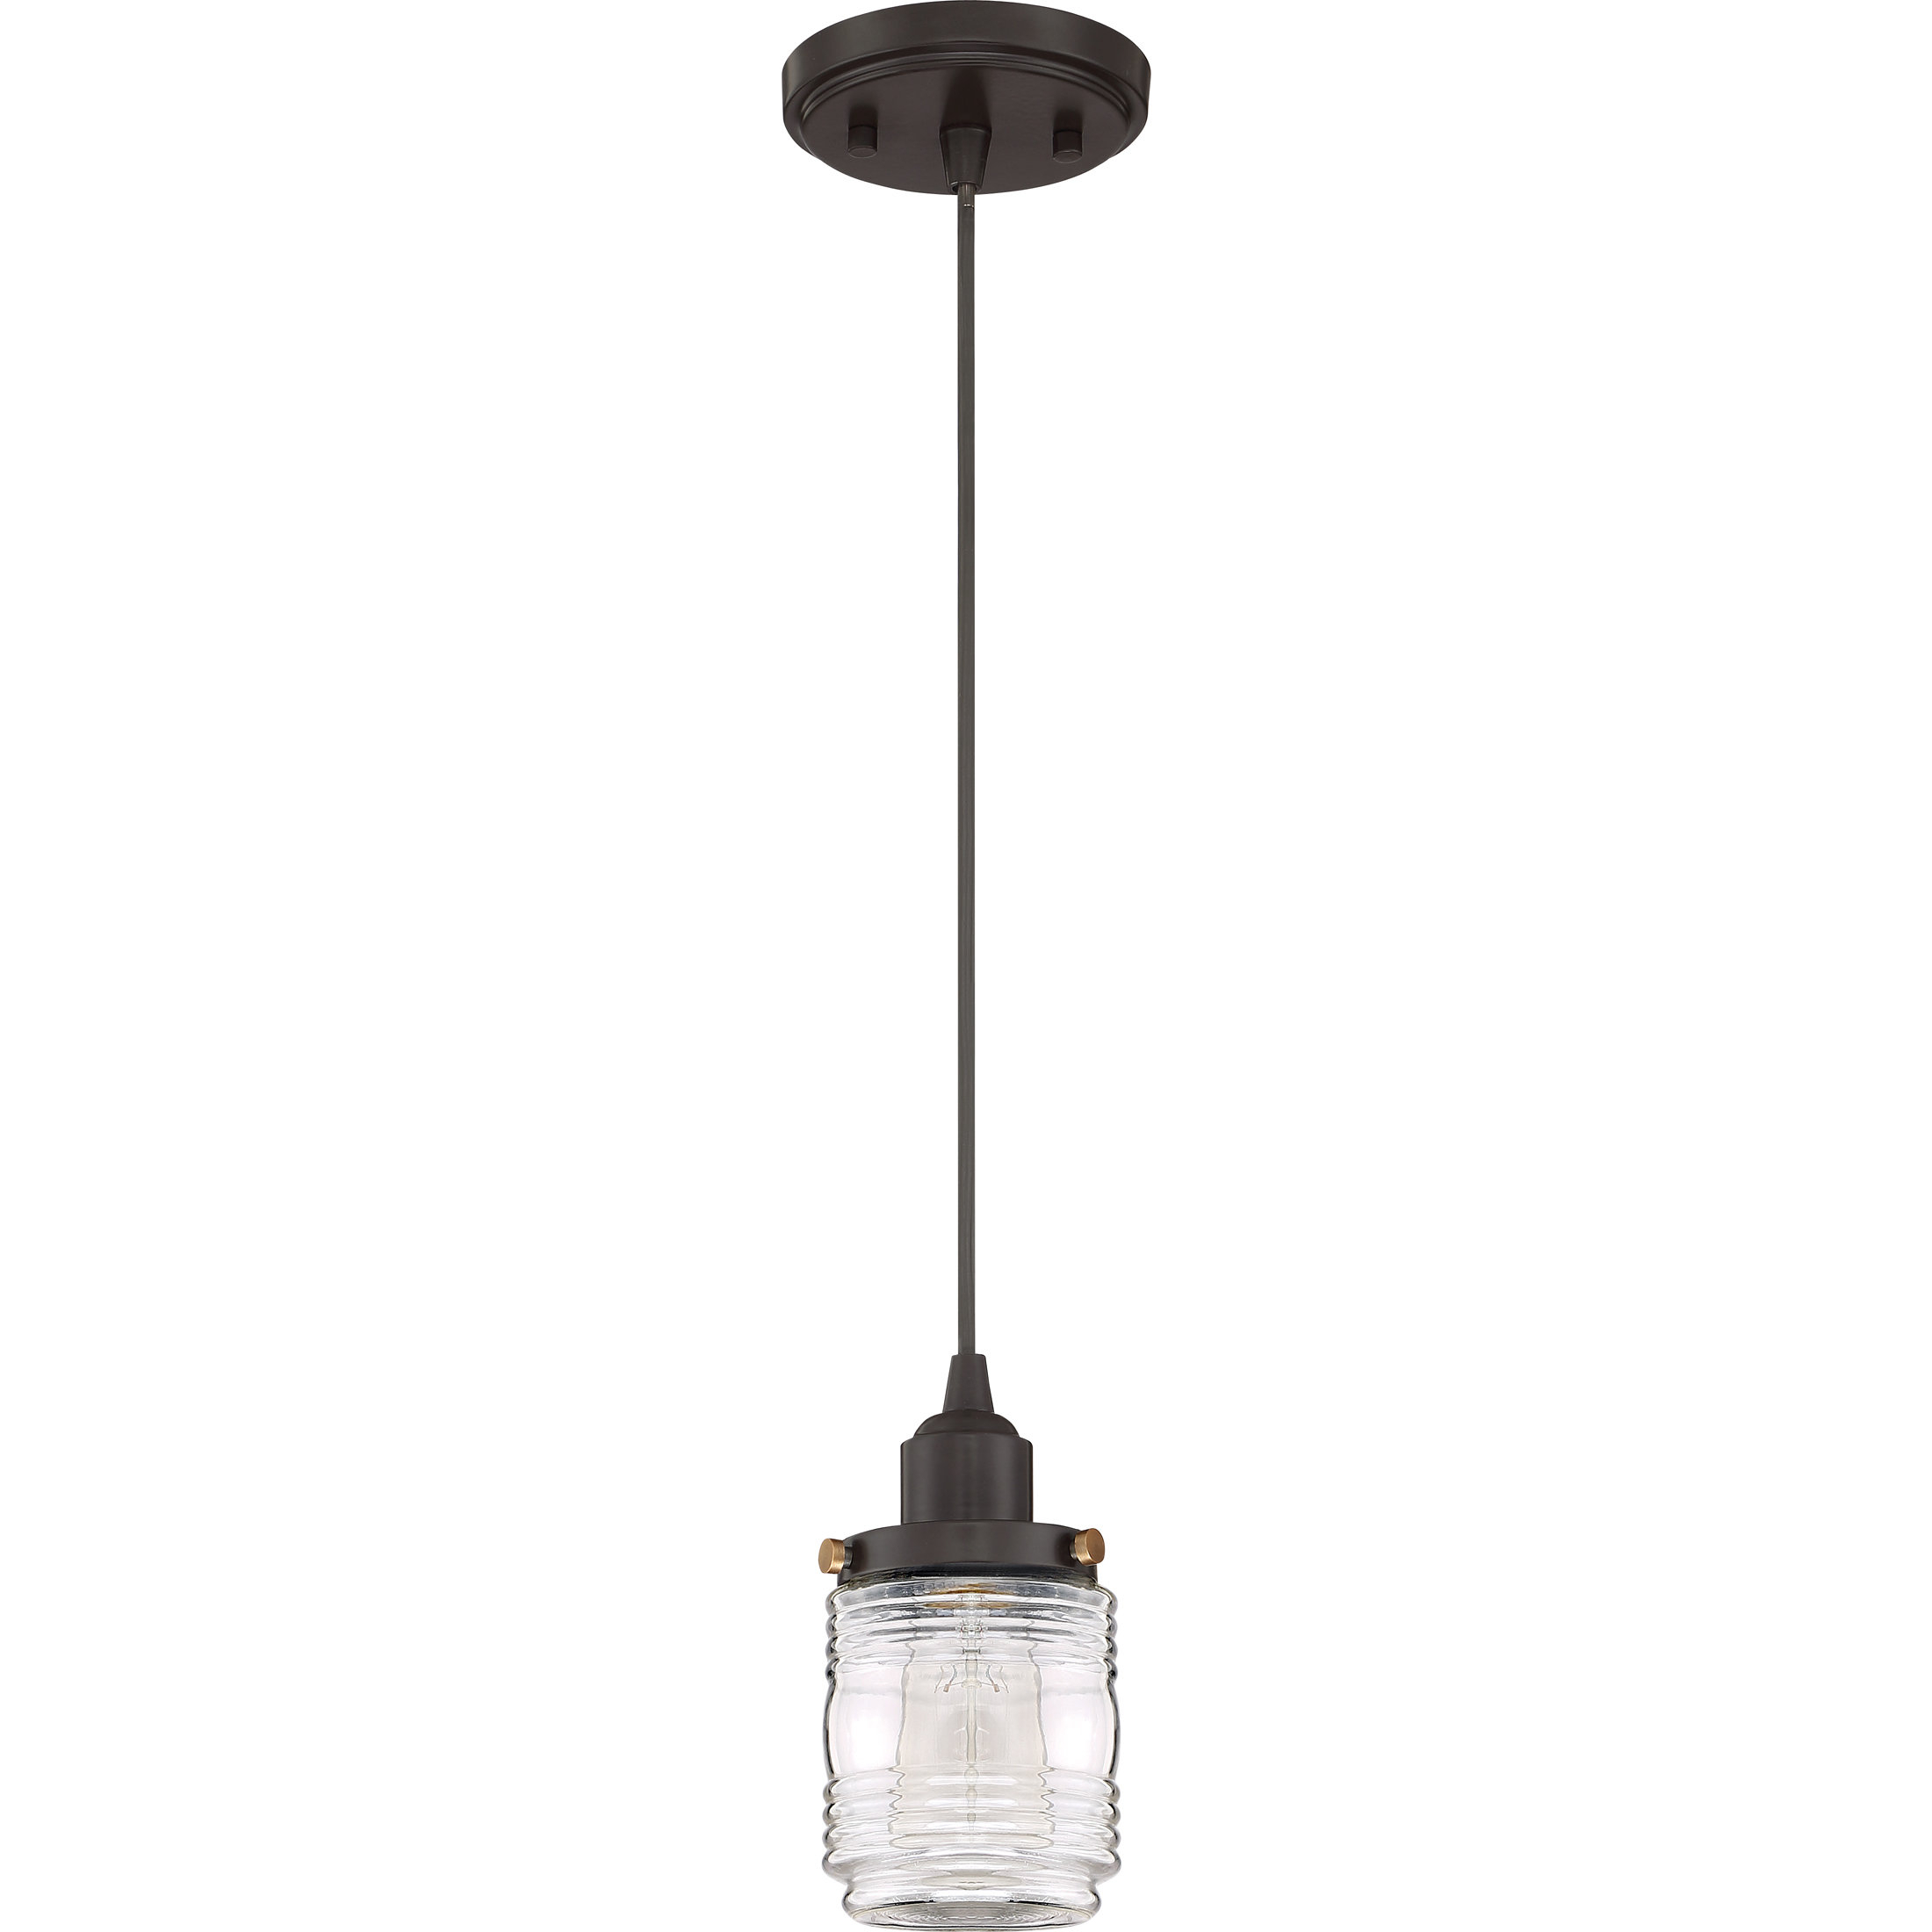 Burgess 1 Light Single Jar Pendant With Famous Sue 1 Light Single Jar Pendants (View 2 of 25)